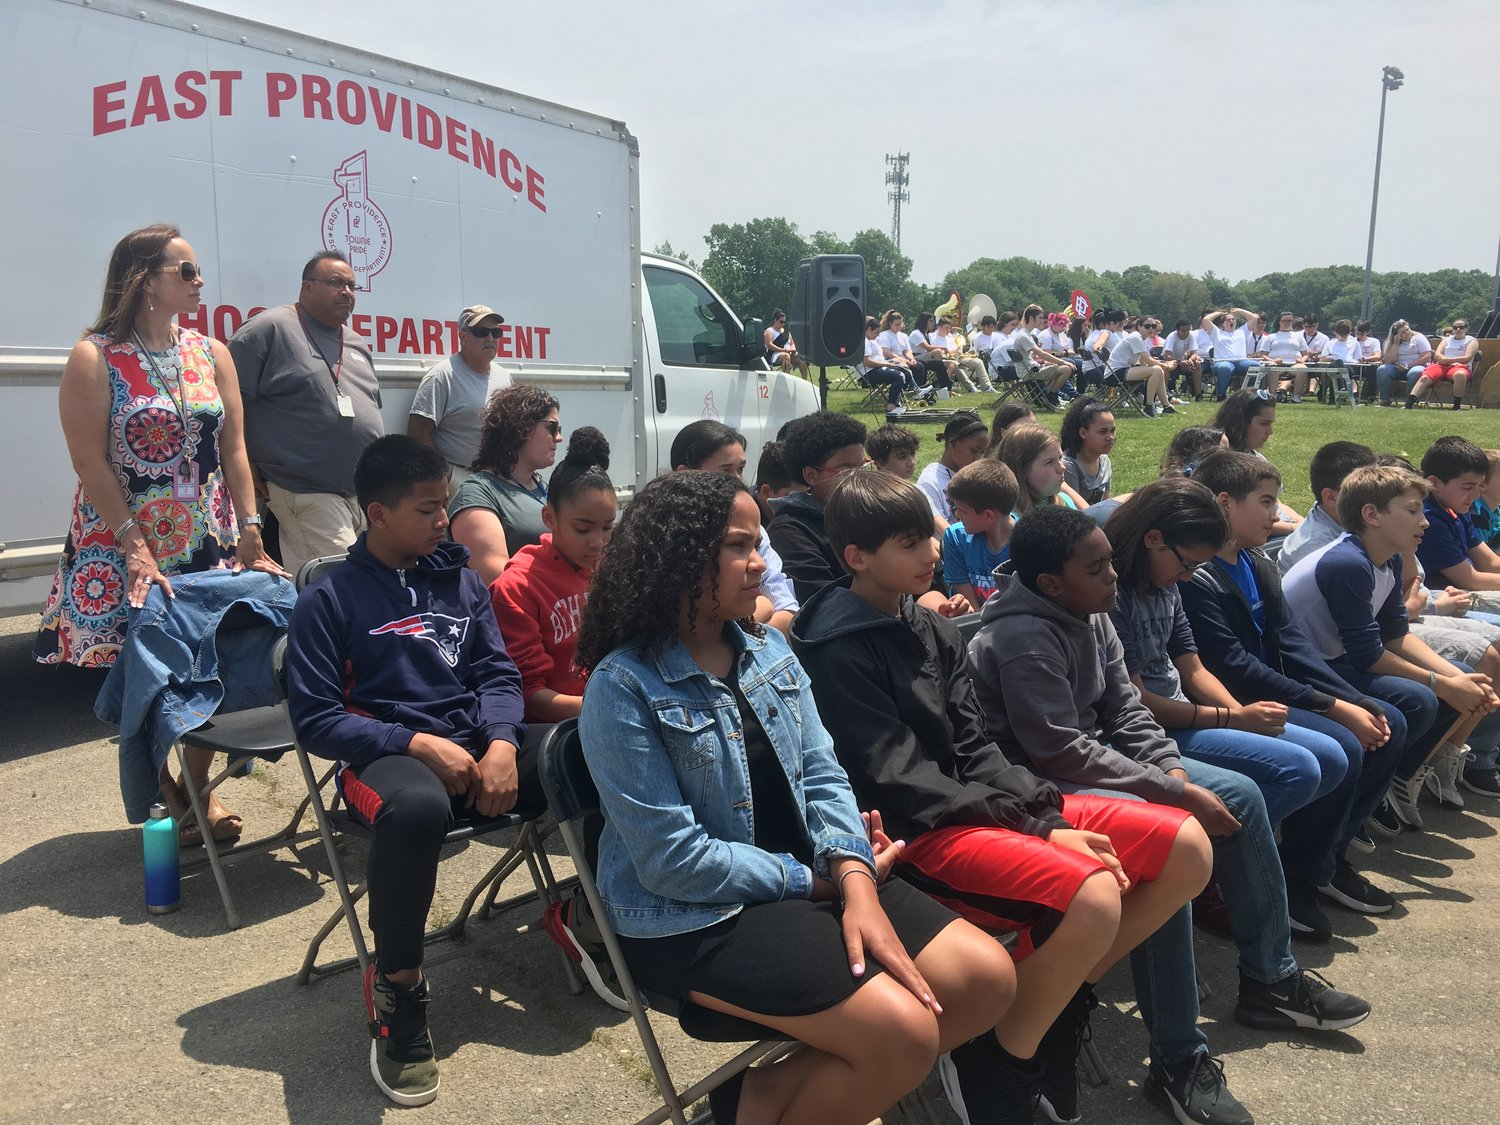 Sixth graders from the Riverside and Martin Middle Schools, the first full class of students expected to graduate from the new EPHS in 2025, attend the ceremony.